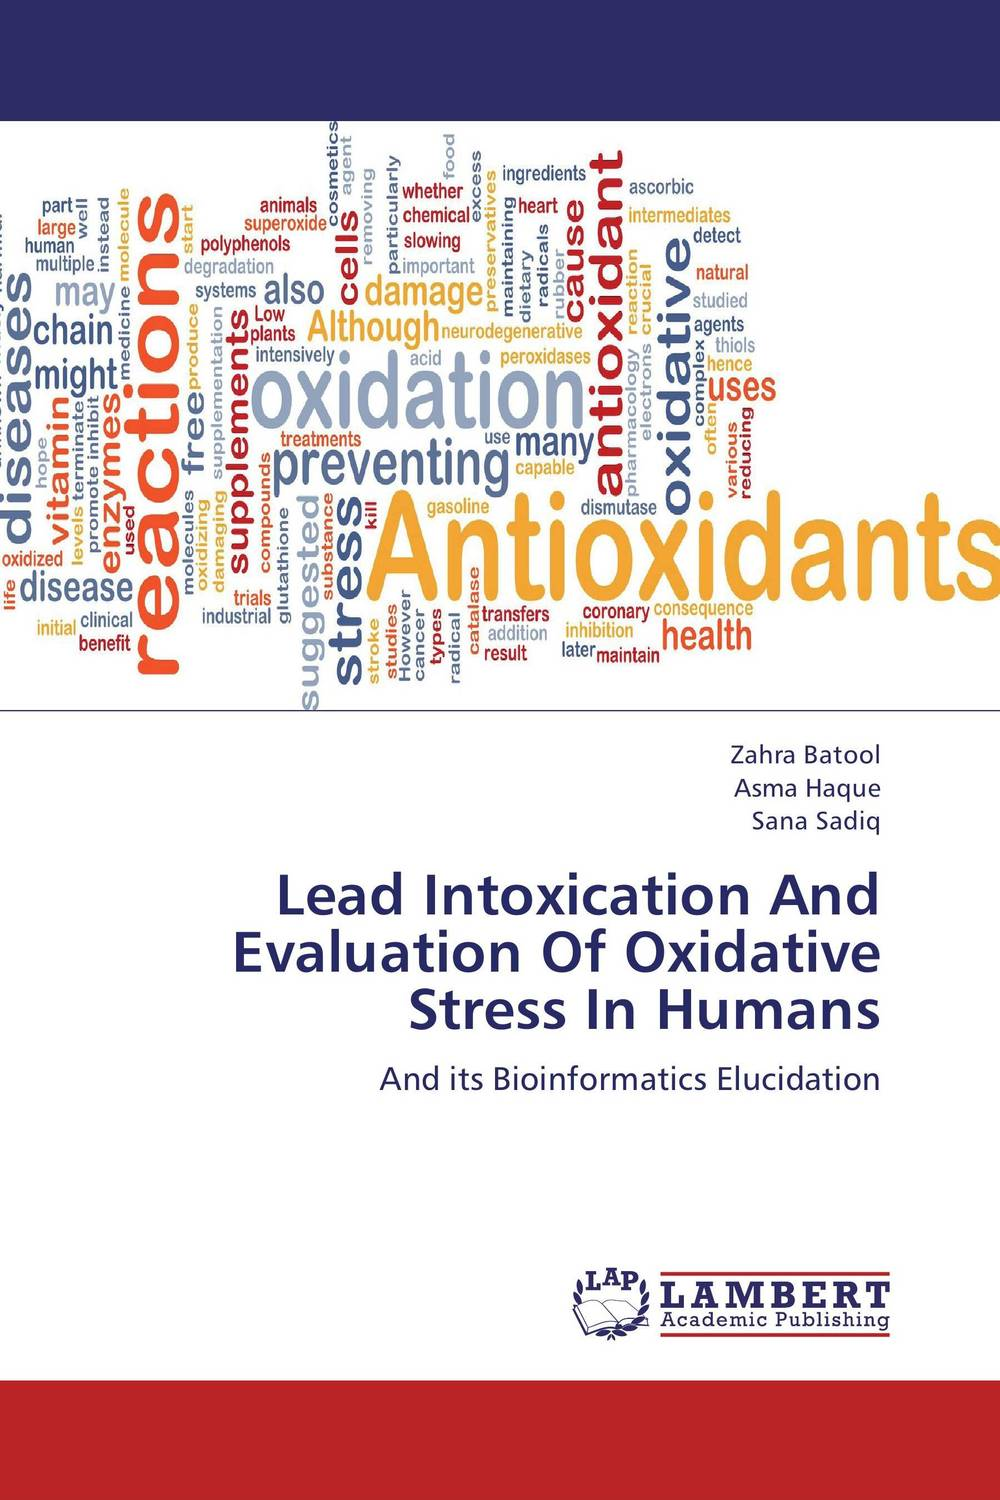 Lead Intoxication And Evaluation Of Oxidative Stress In Humans zahra batool asma haque and sana sadiq lead intoxication and evaluation of oxidative stress in humans